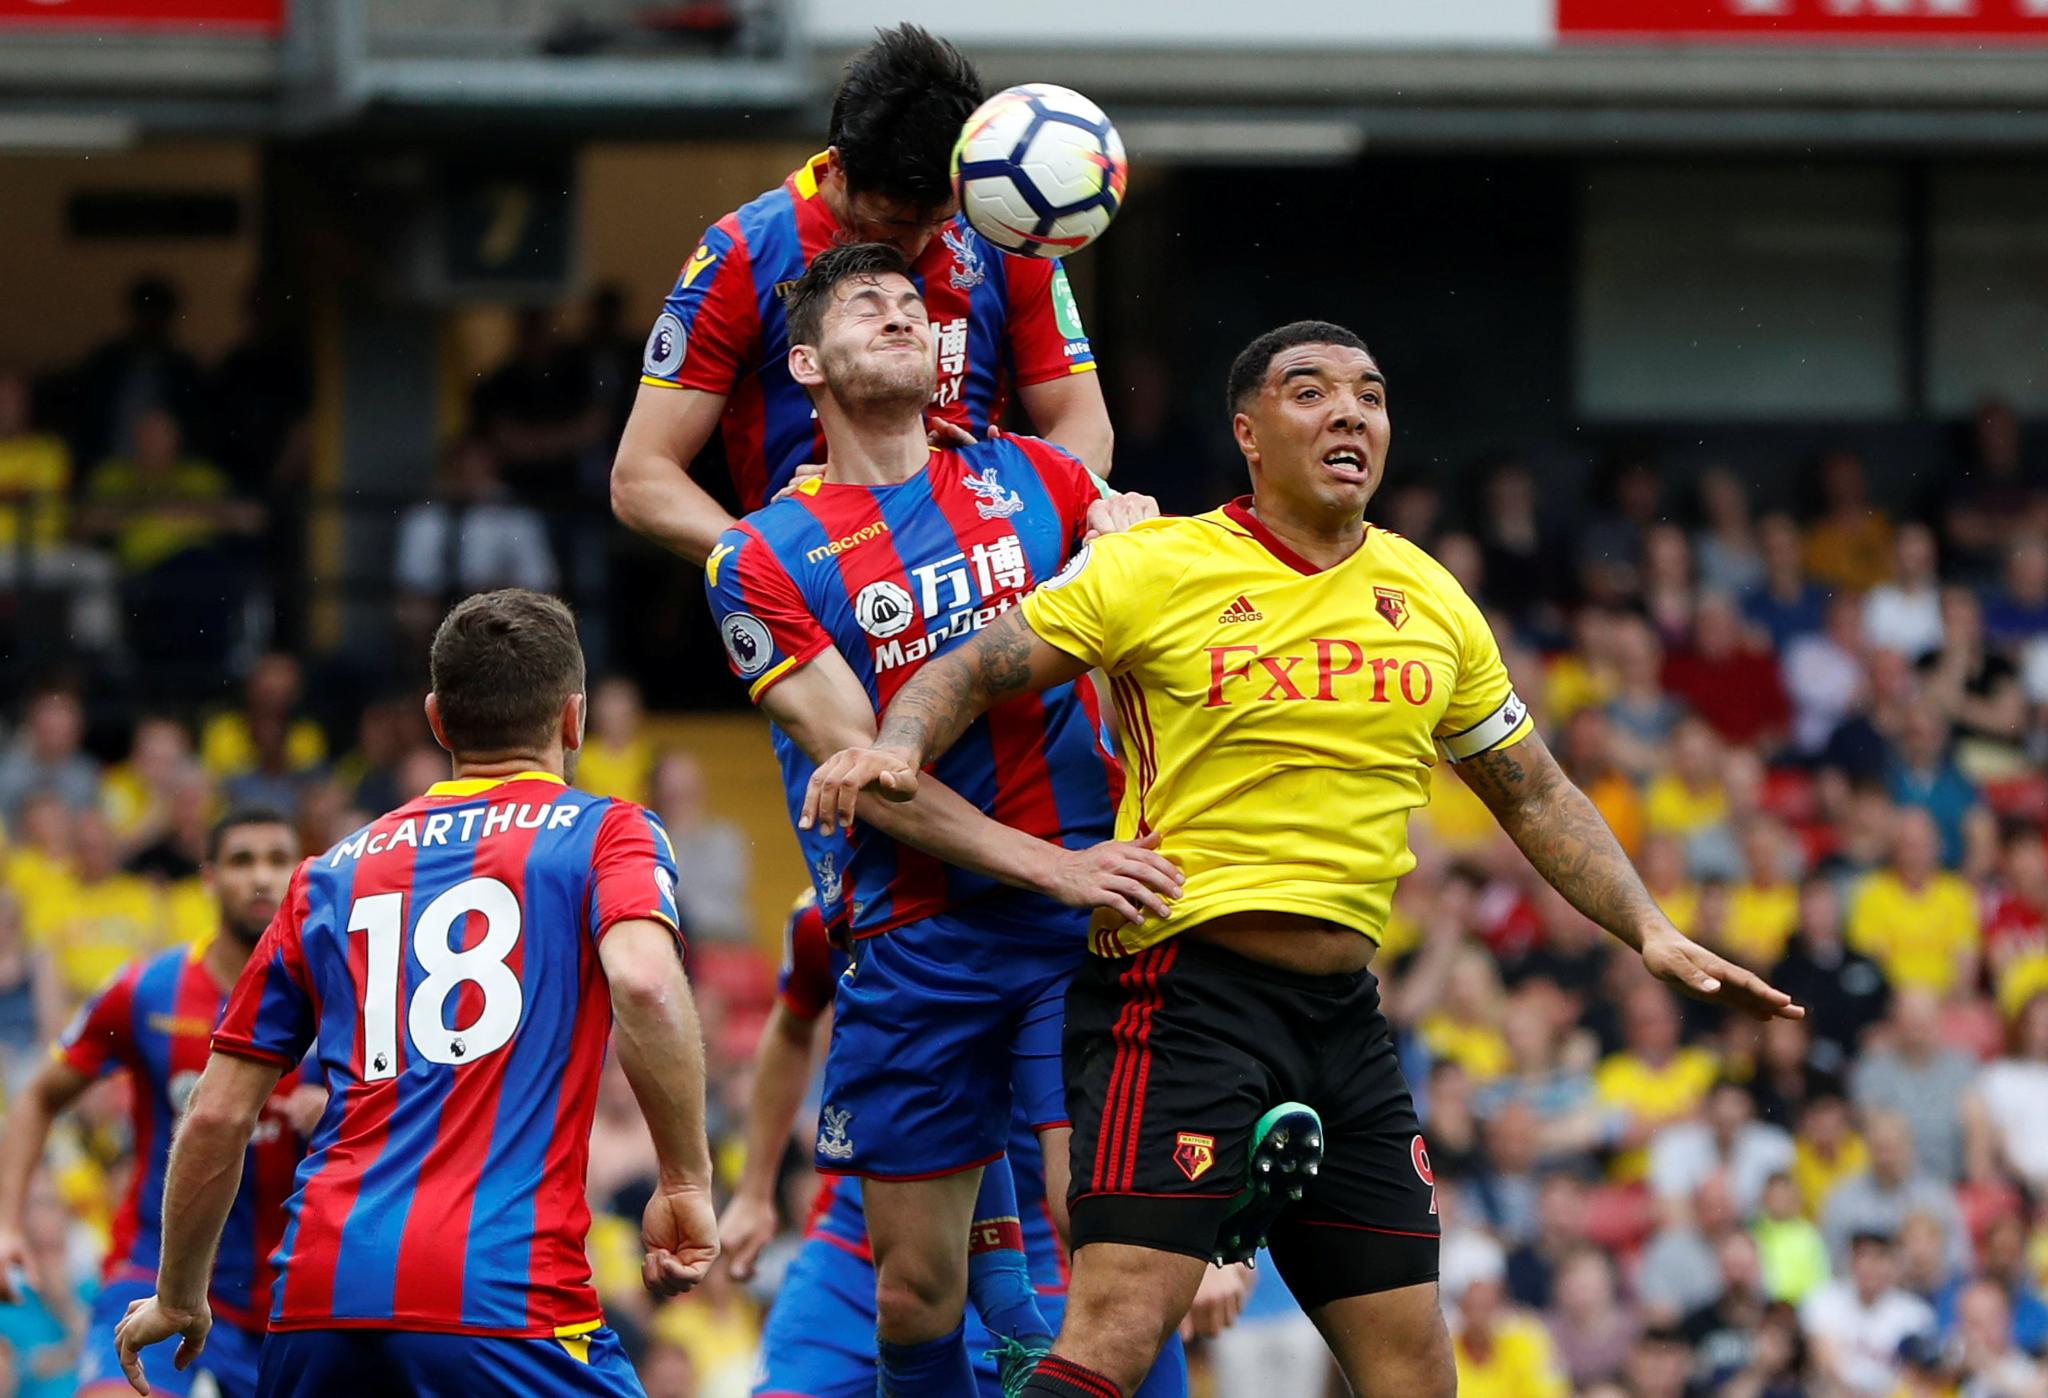 Who will rise up and claim the points?  Let's find out ➡️ https://t.co/AoUN2Mck4A  #WATCRY https://t.co/oCaESPZ5YM